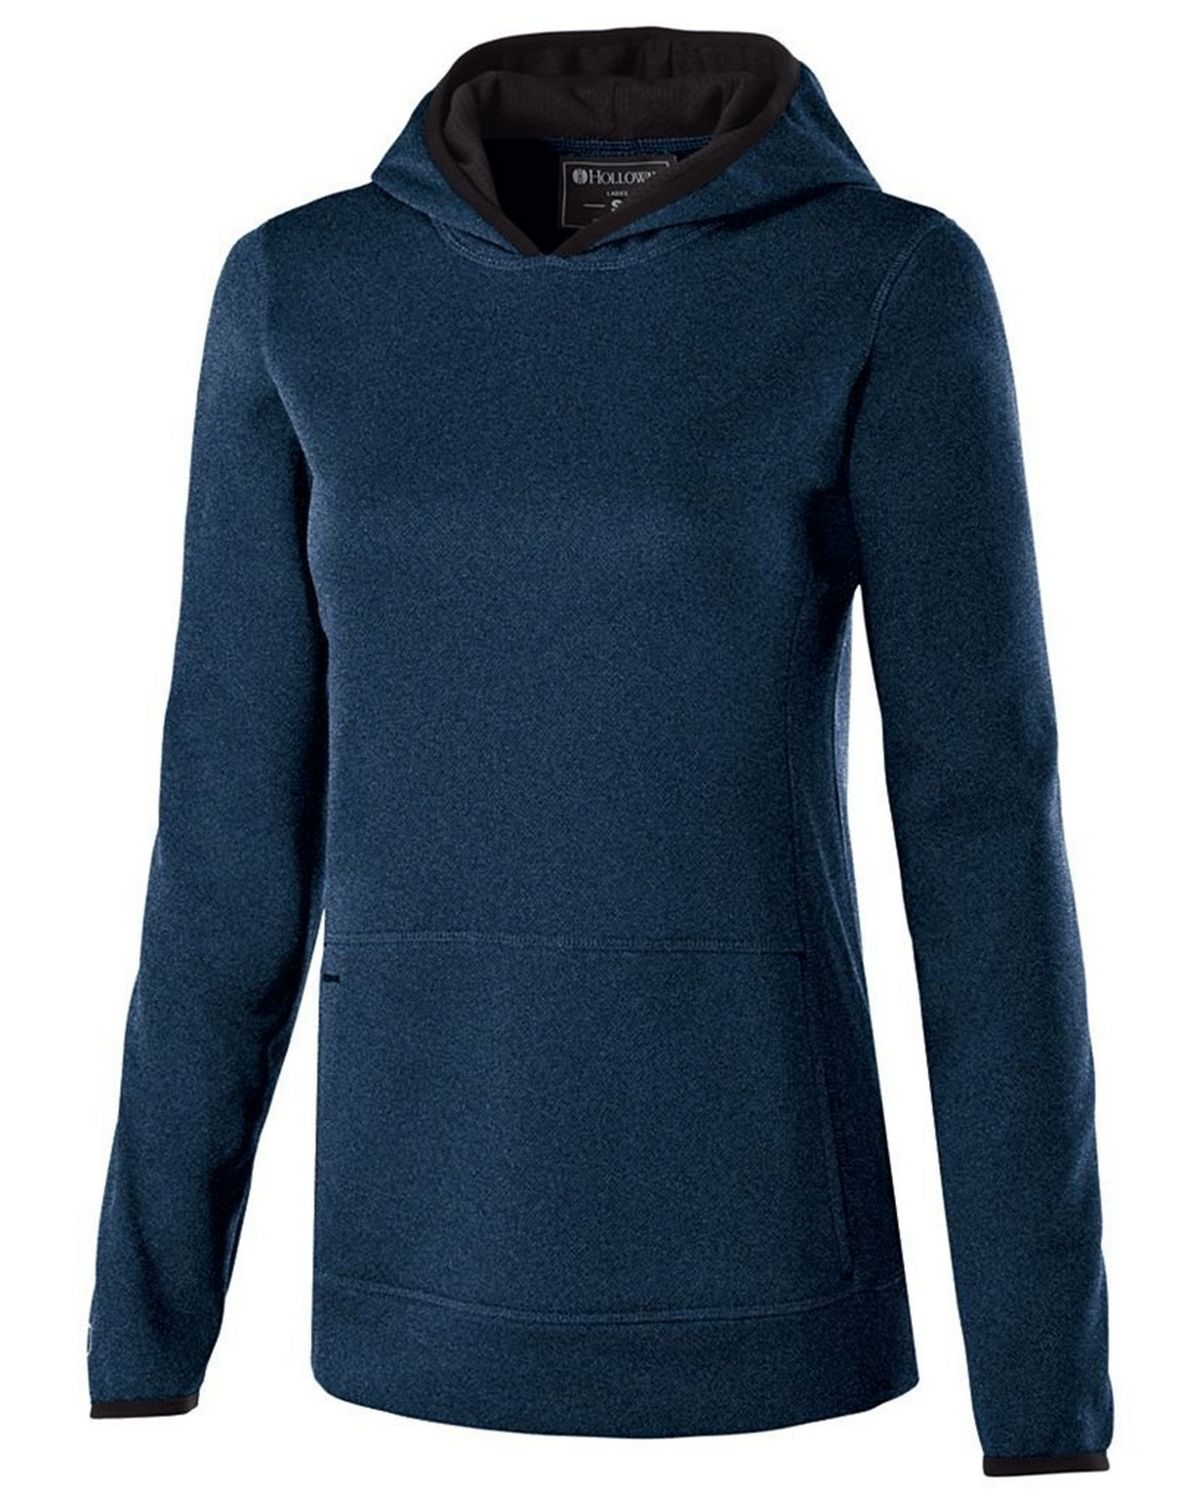 Holloway 229375 Ladies Polyester Fleece Hoodie - Navy Heather - M 229375